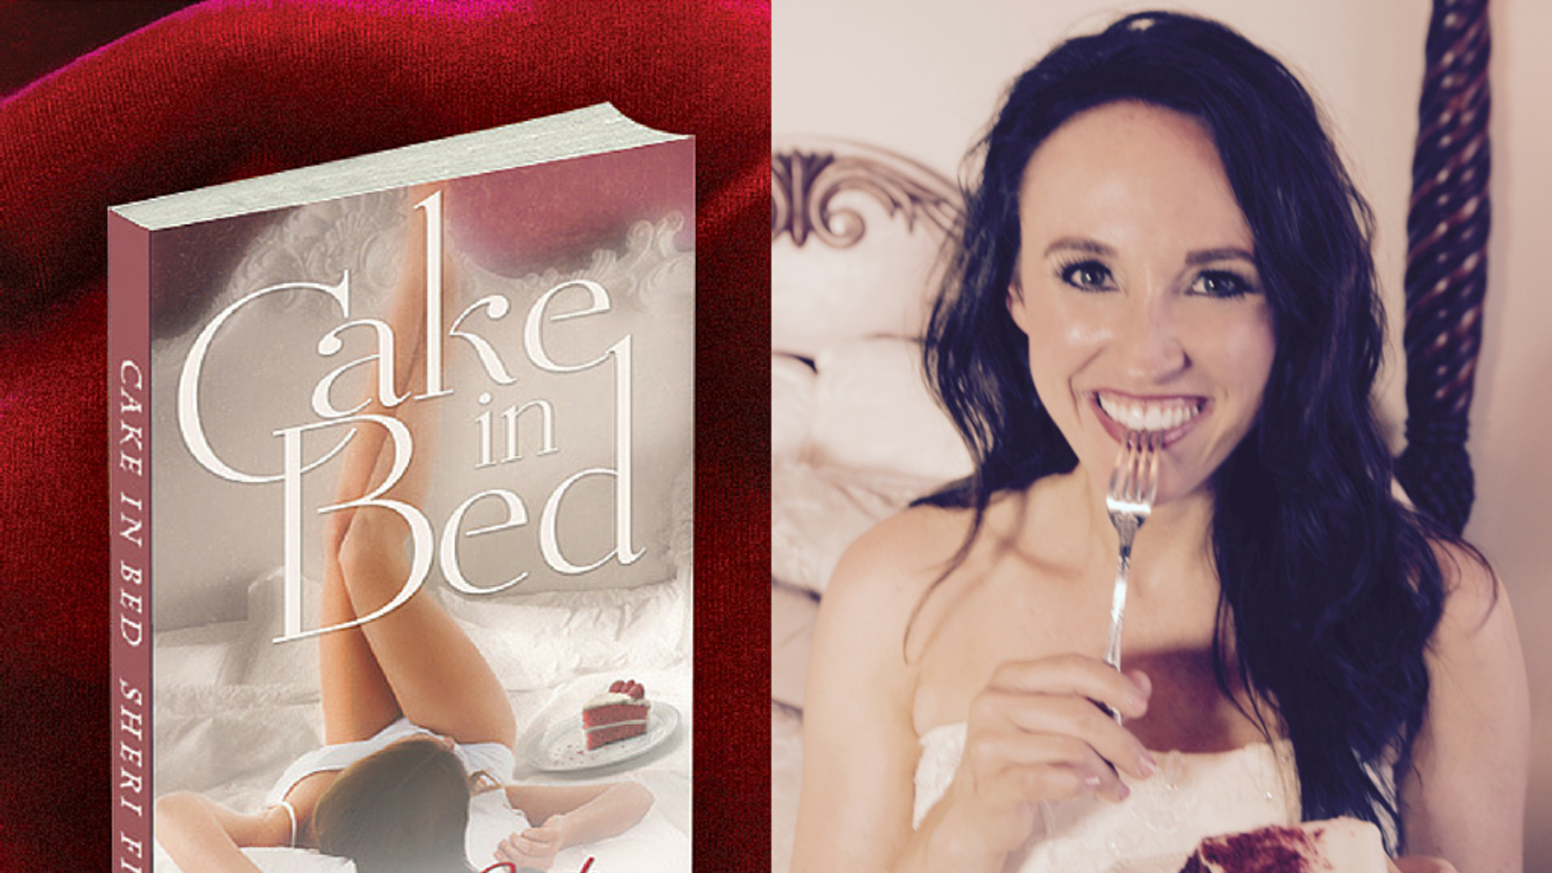 Cake In Bed is a sexy, inspiring novel about a woman who discovers herself through misadventures and finds love in an unexpected place.